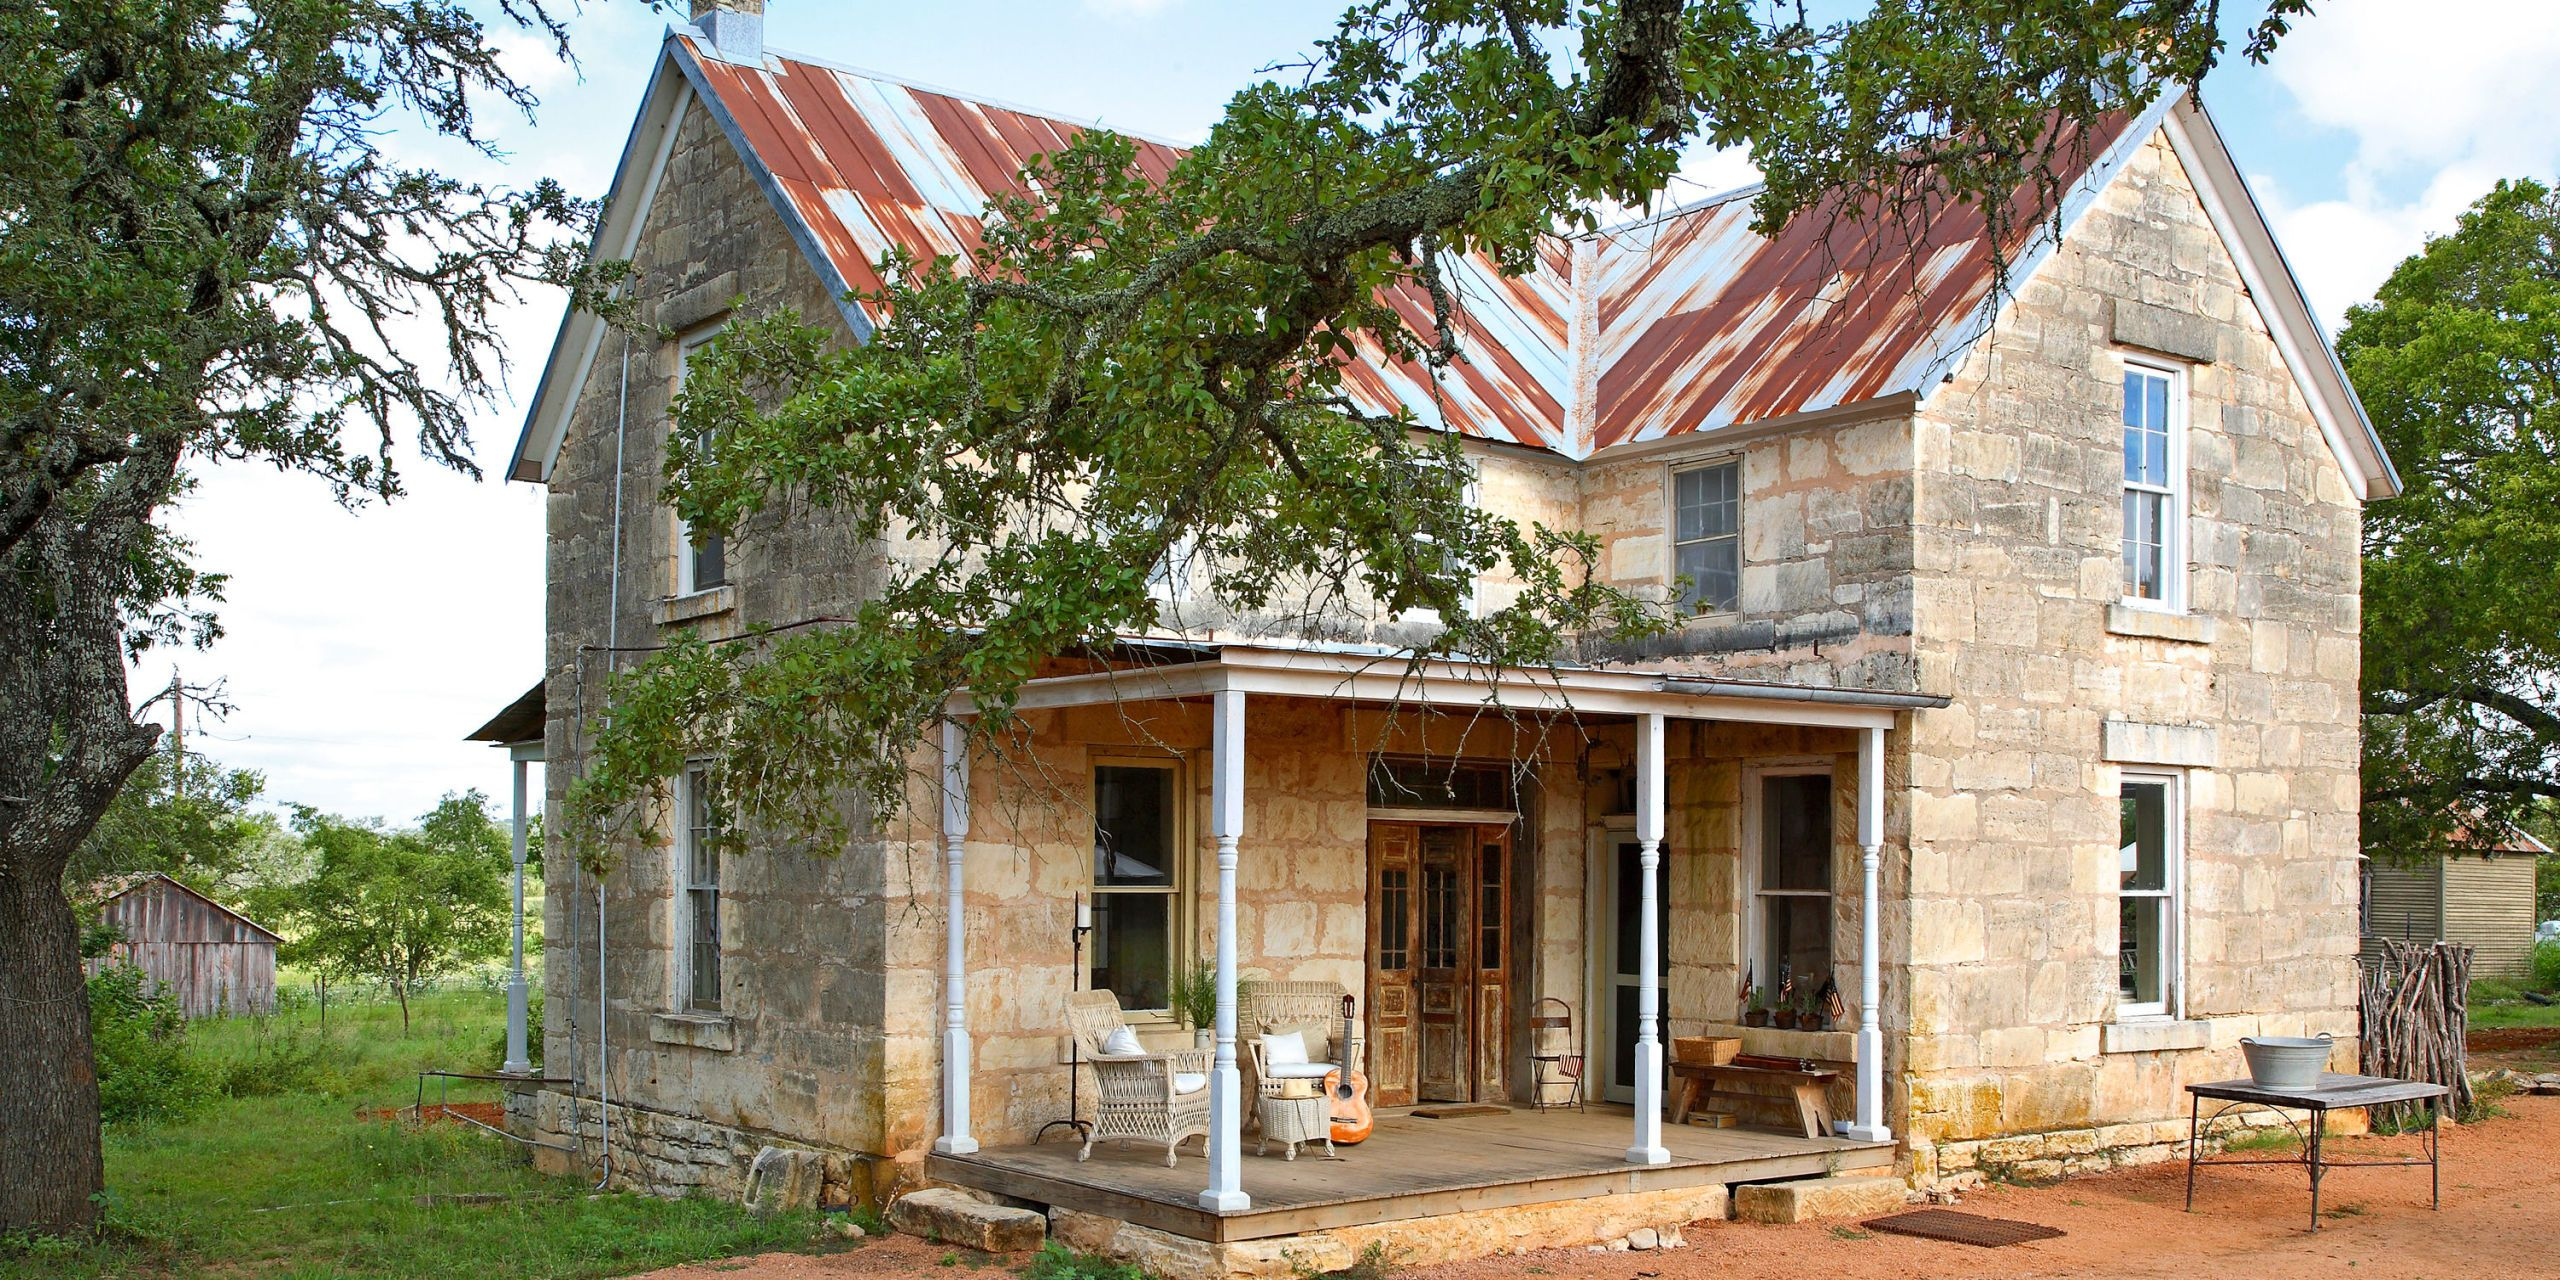 High Quality When A Couple Took On The Renovation Of A Unique Home In The Texas Hill  Country They Found Some Unexpected Delights.